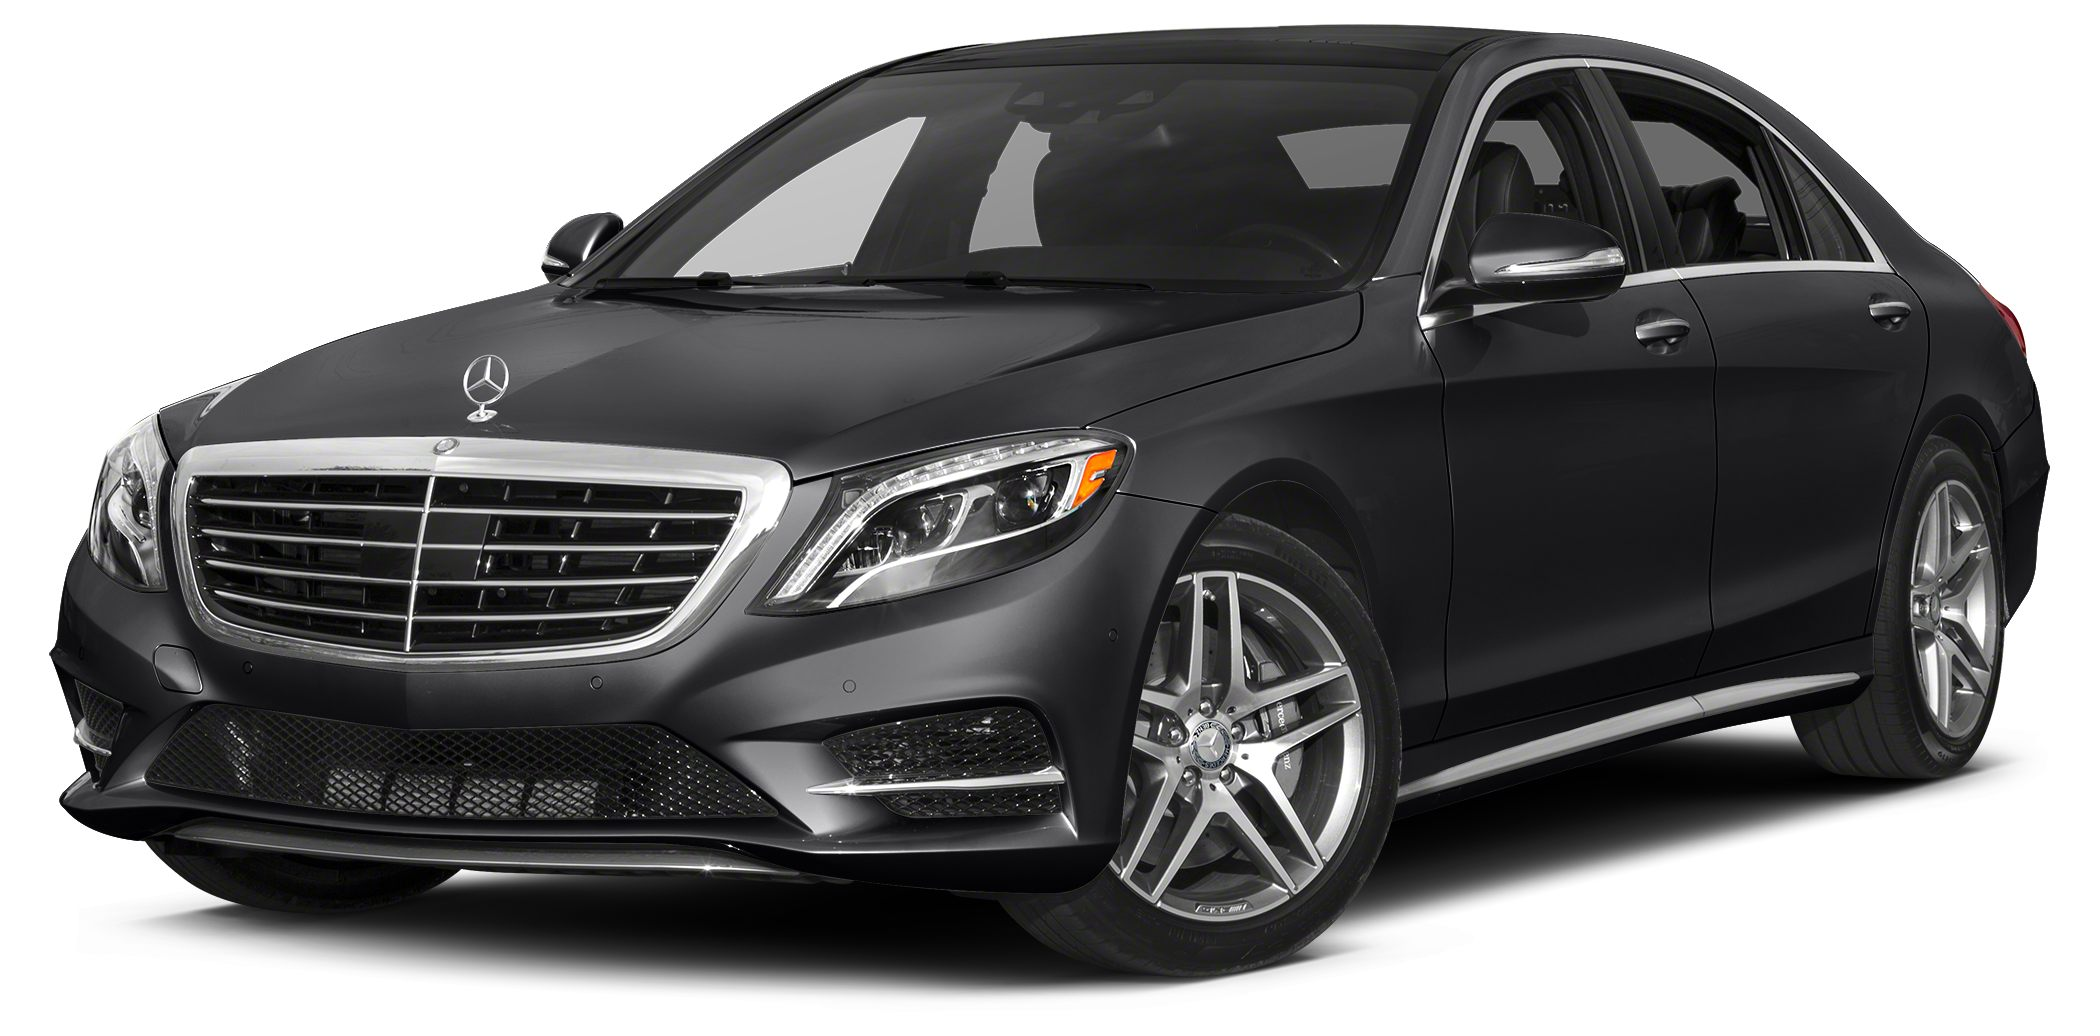 2015 MERCEDES S-Class S 550 4MATIC ONE PRICE STOP NO HASSLE NO HAGGLE CAR BUYING EXPERIENCE